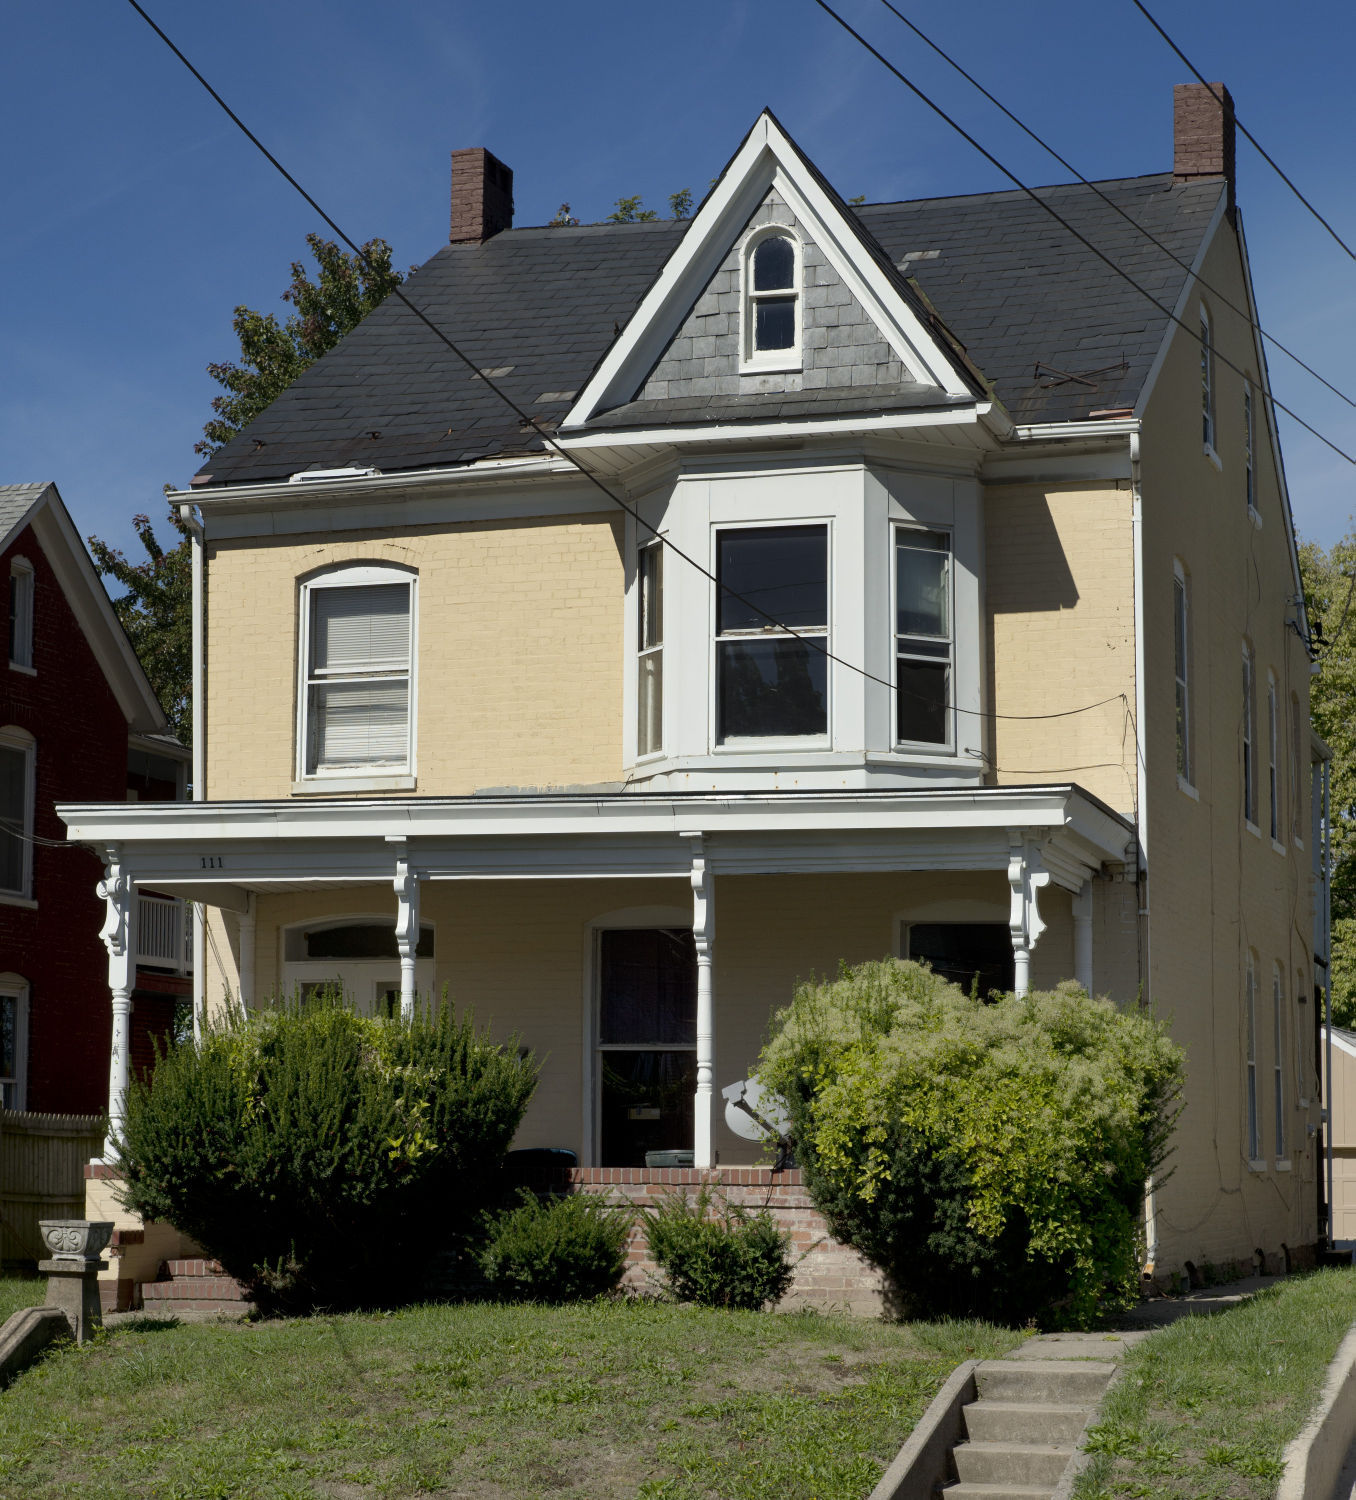 On Blighted Property Watch List